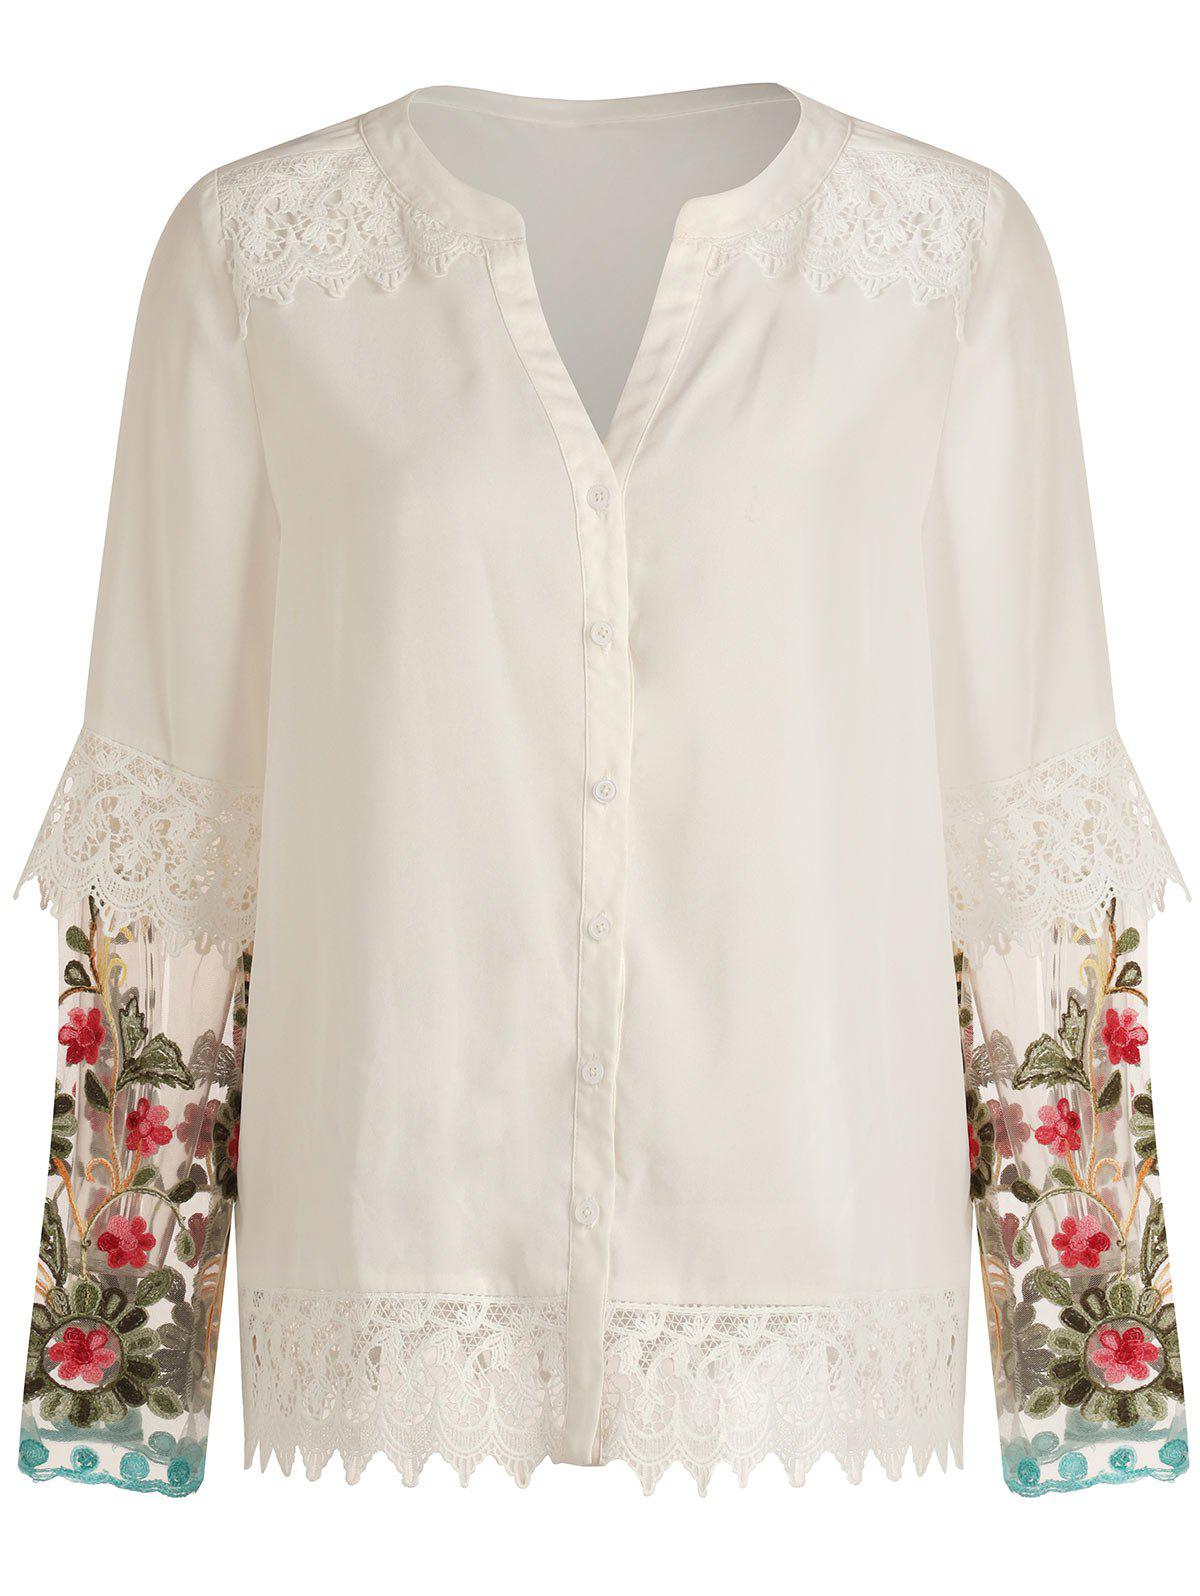 Embroidered Lace Panel Shirt